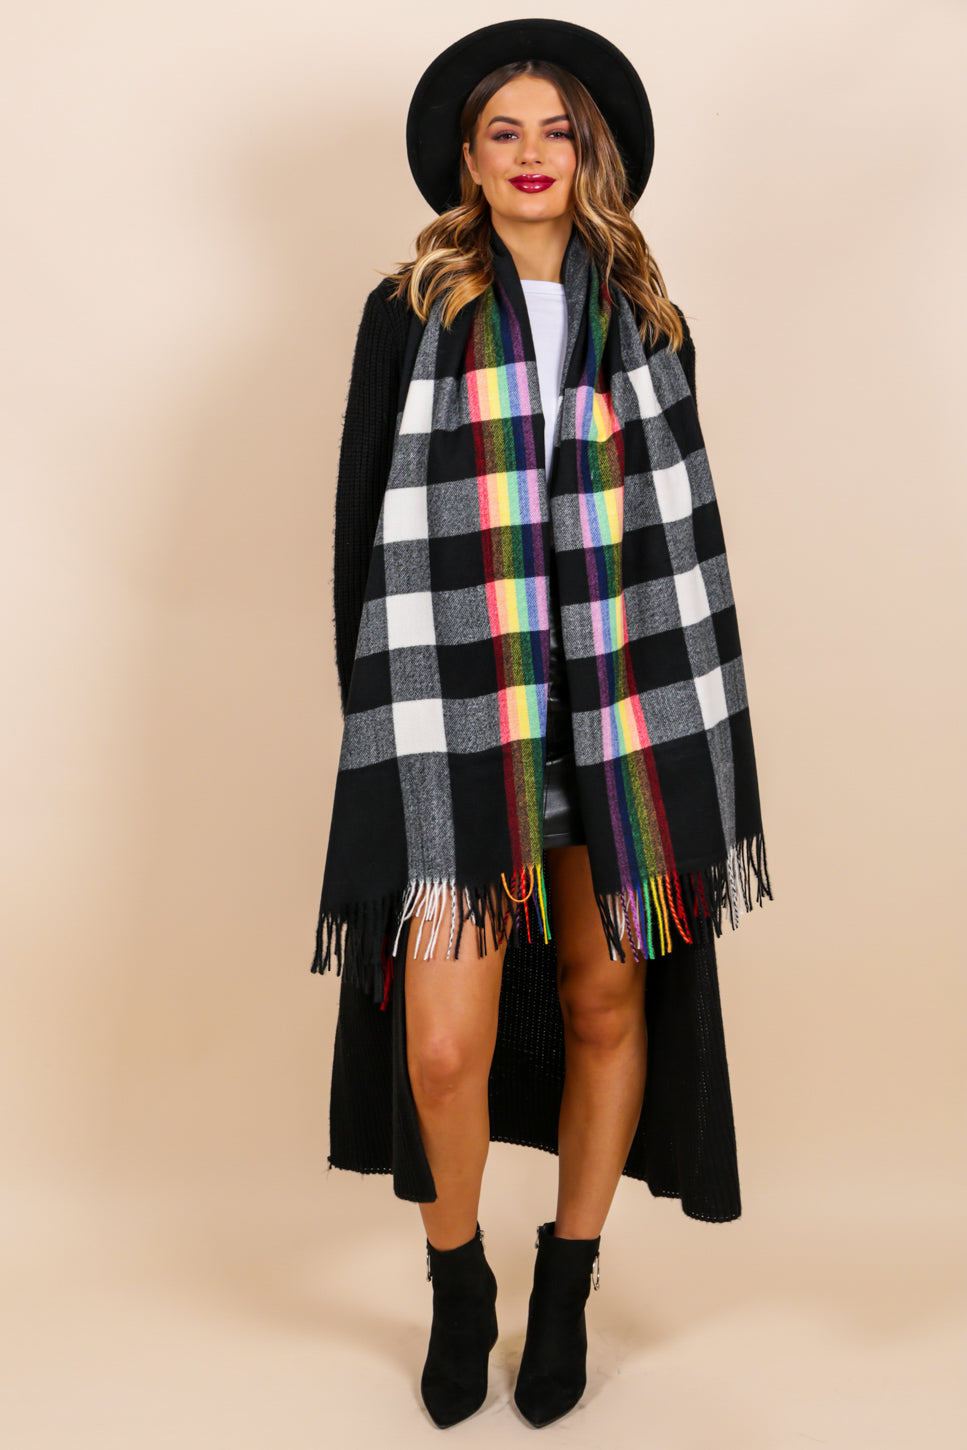 https://cdn.shopify.com/s/files/1/0062/6661/7925/files/product-video-chelsea_girl-scarf-in-black-rainbow.mp4?5932